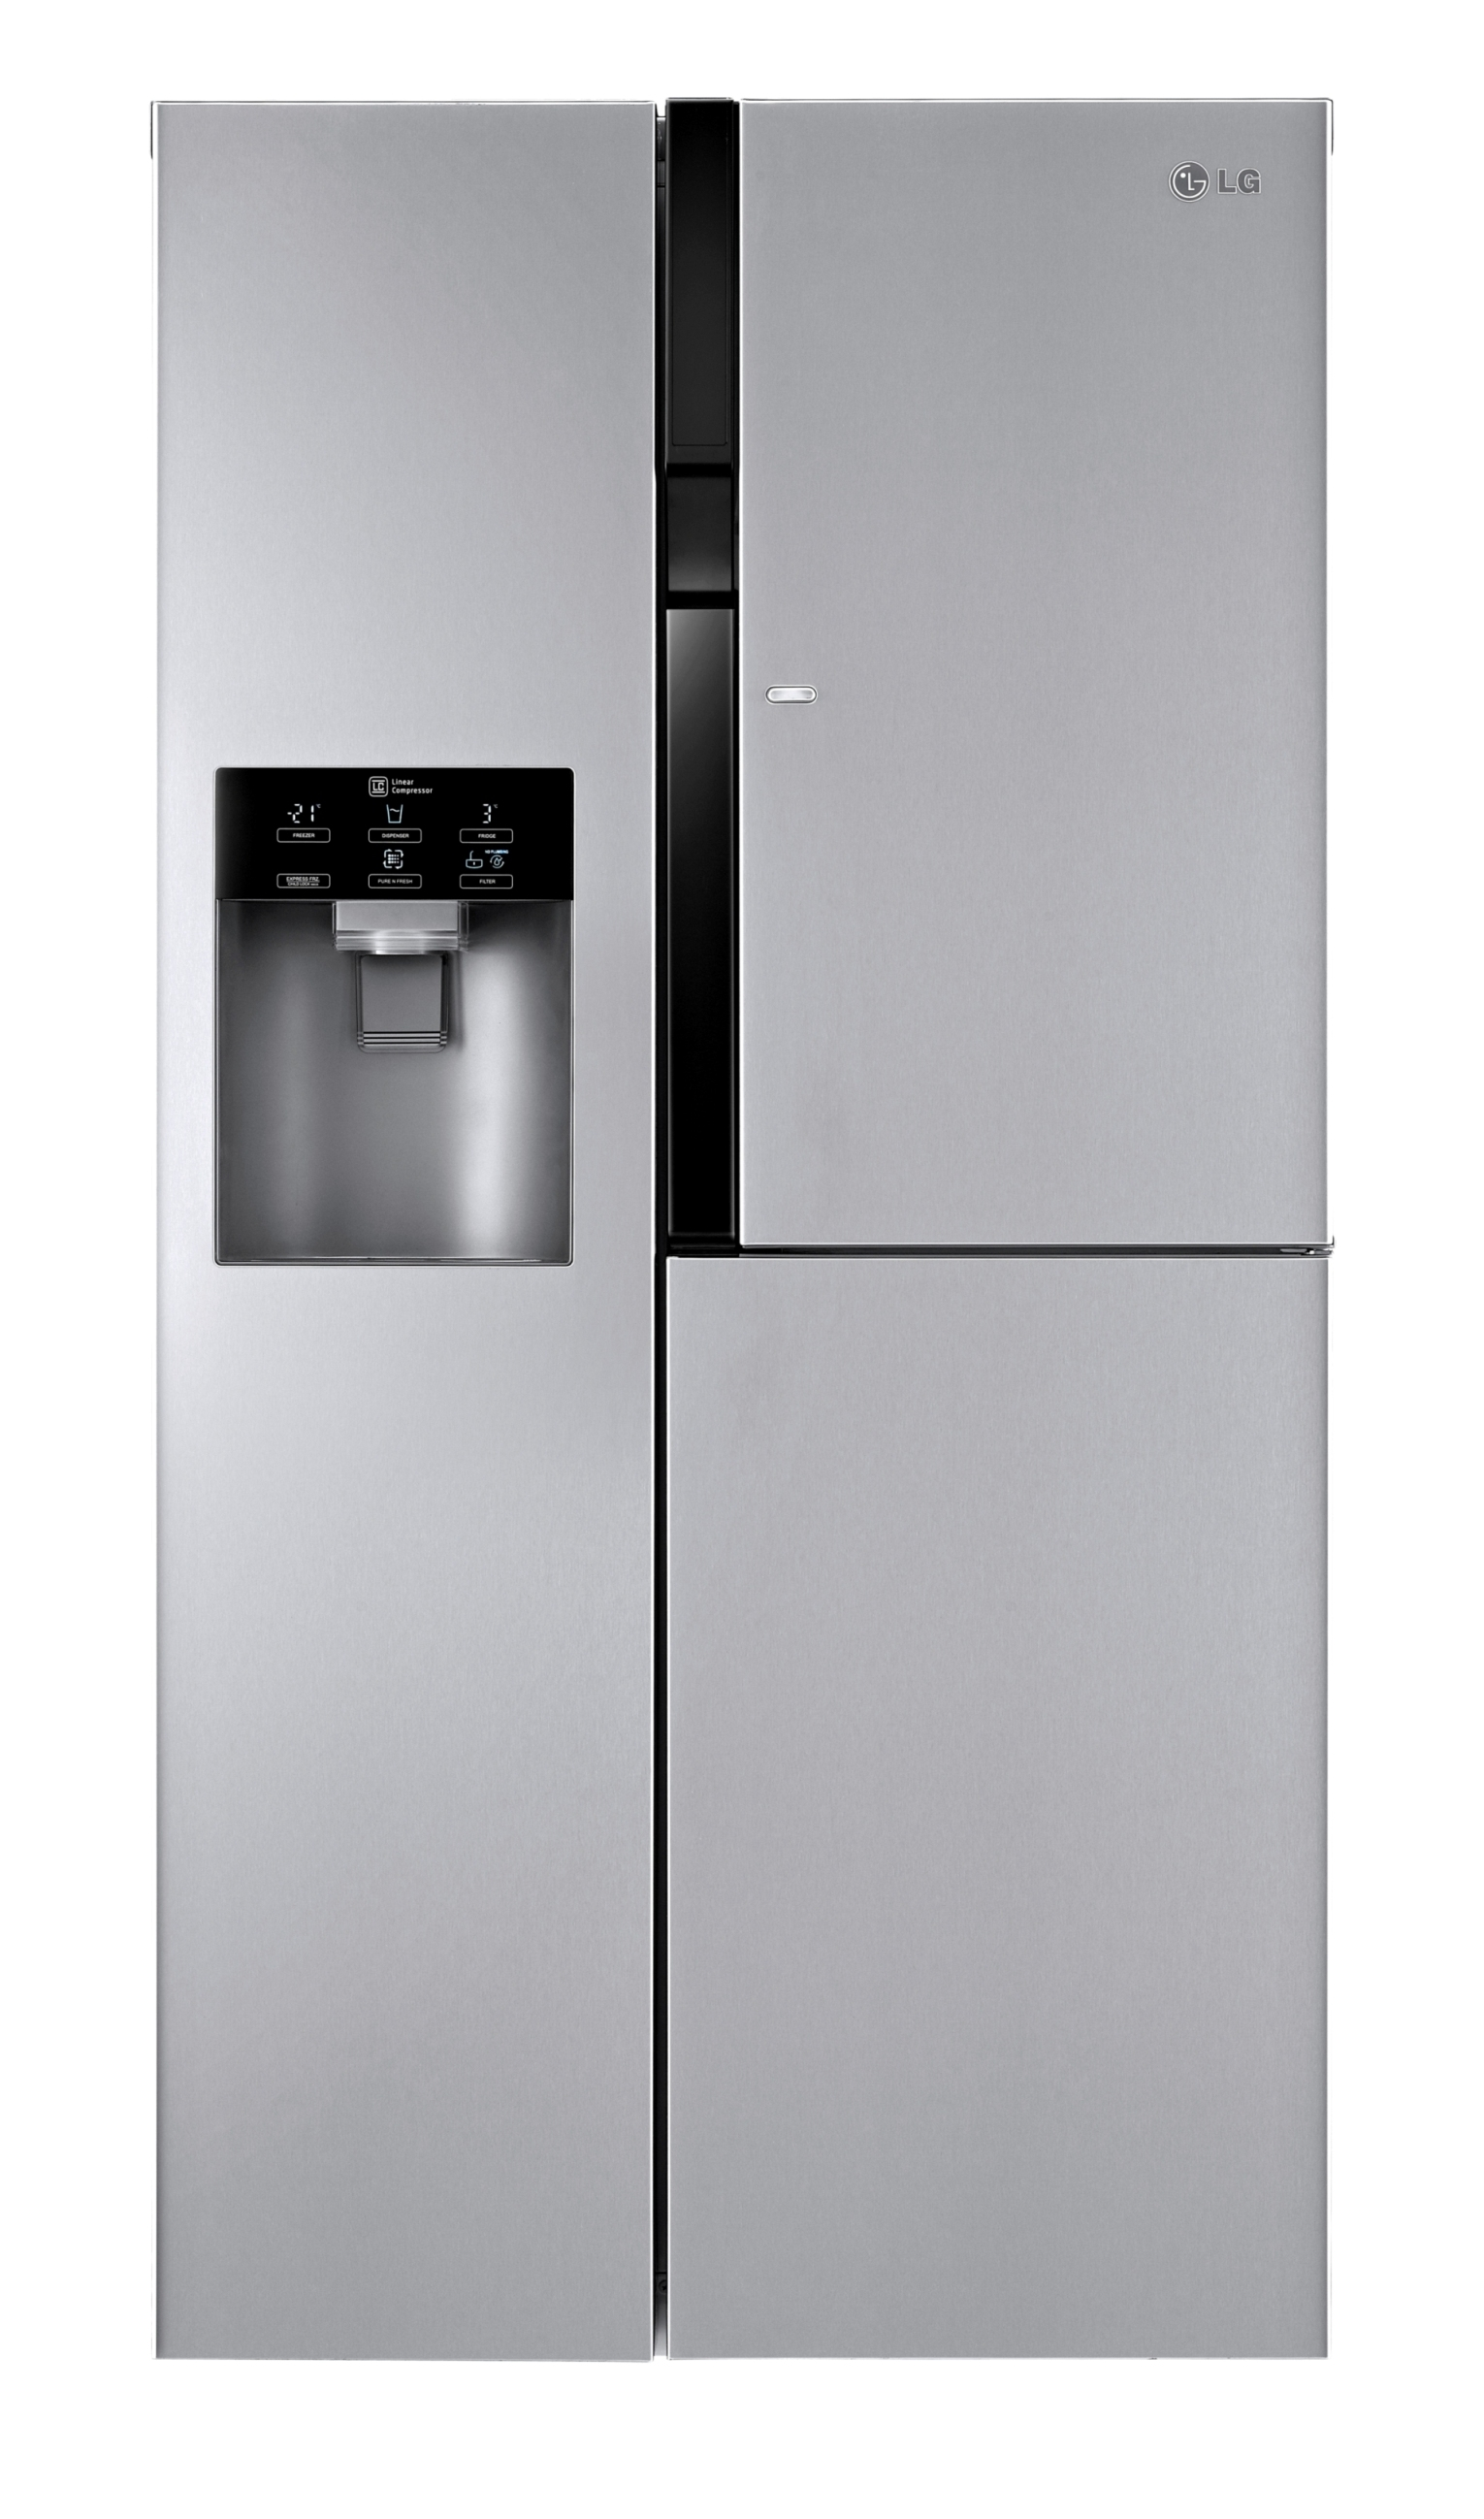 A front view of LG's side-by-side refrigerator with Door-in-Door system